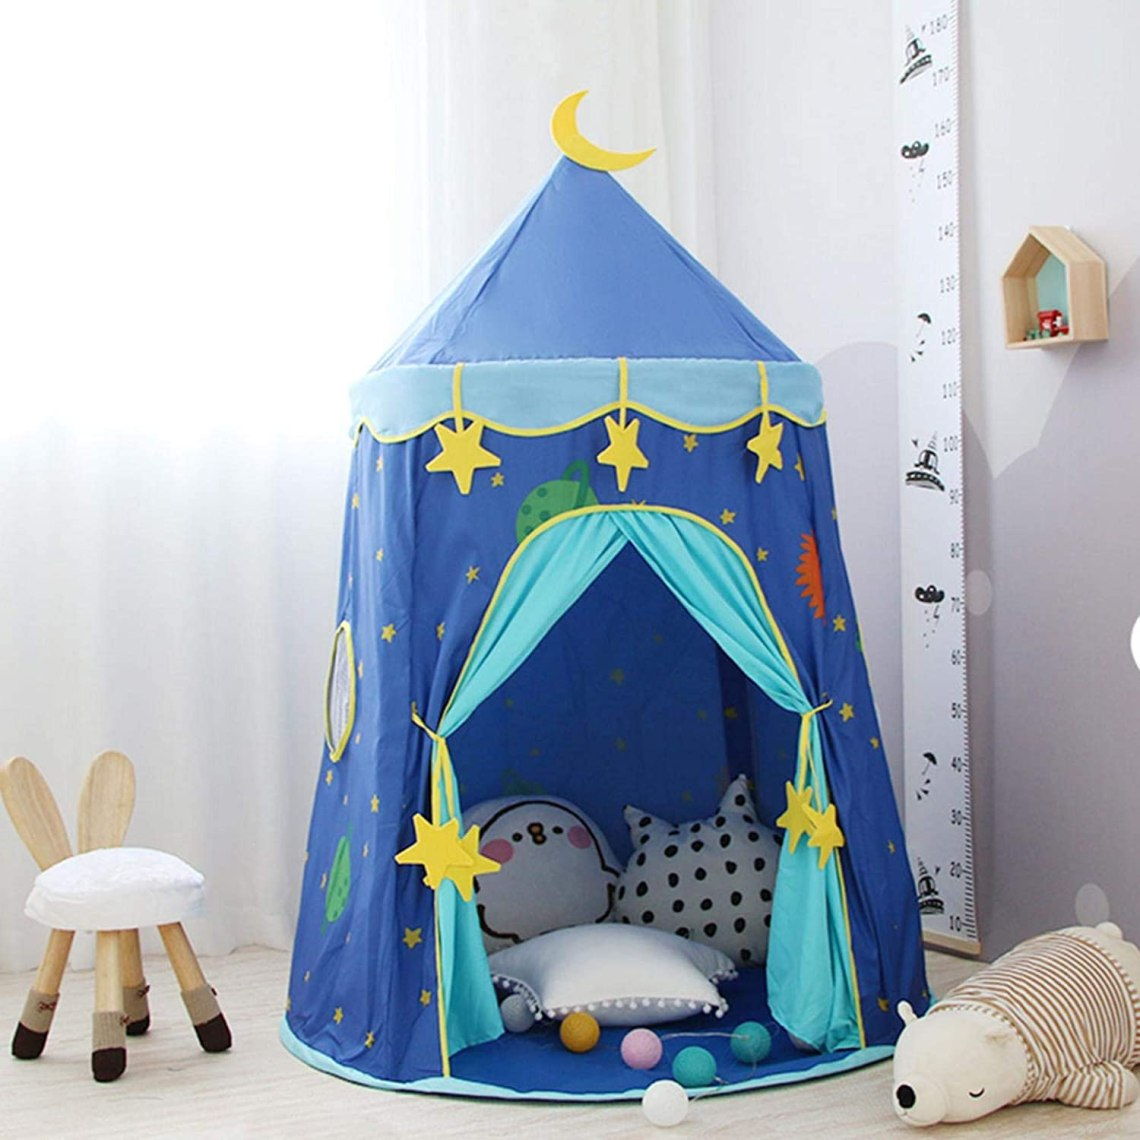 Teepee Tent For Kids Play Tent Game House Kids Room Decor Boys Girls Castle For Indoor Outdoor Picnic Outing Amazon Ca Toys Games